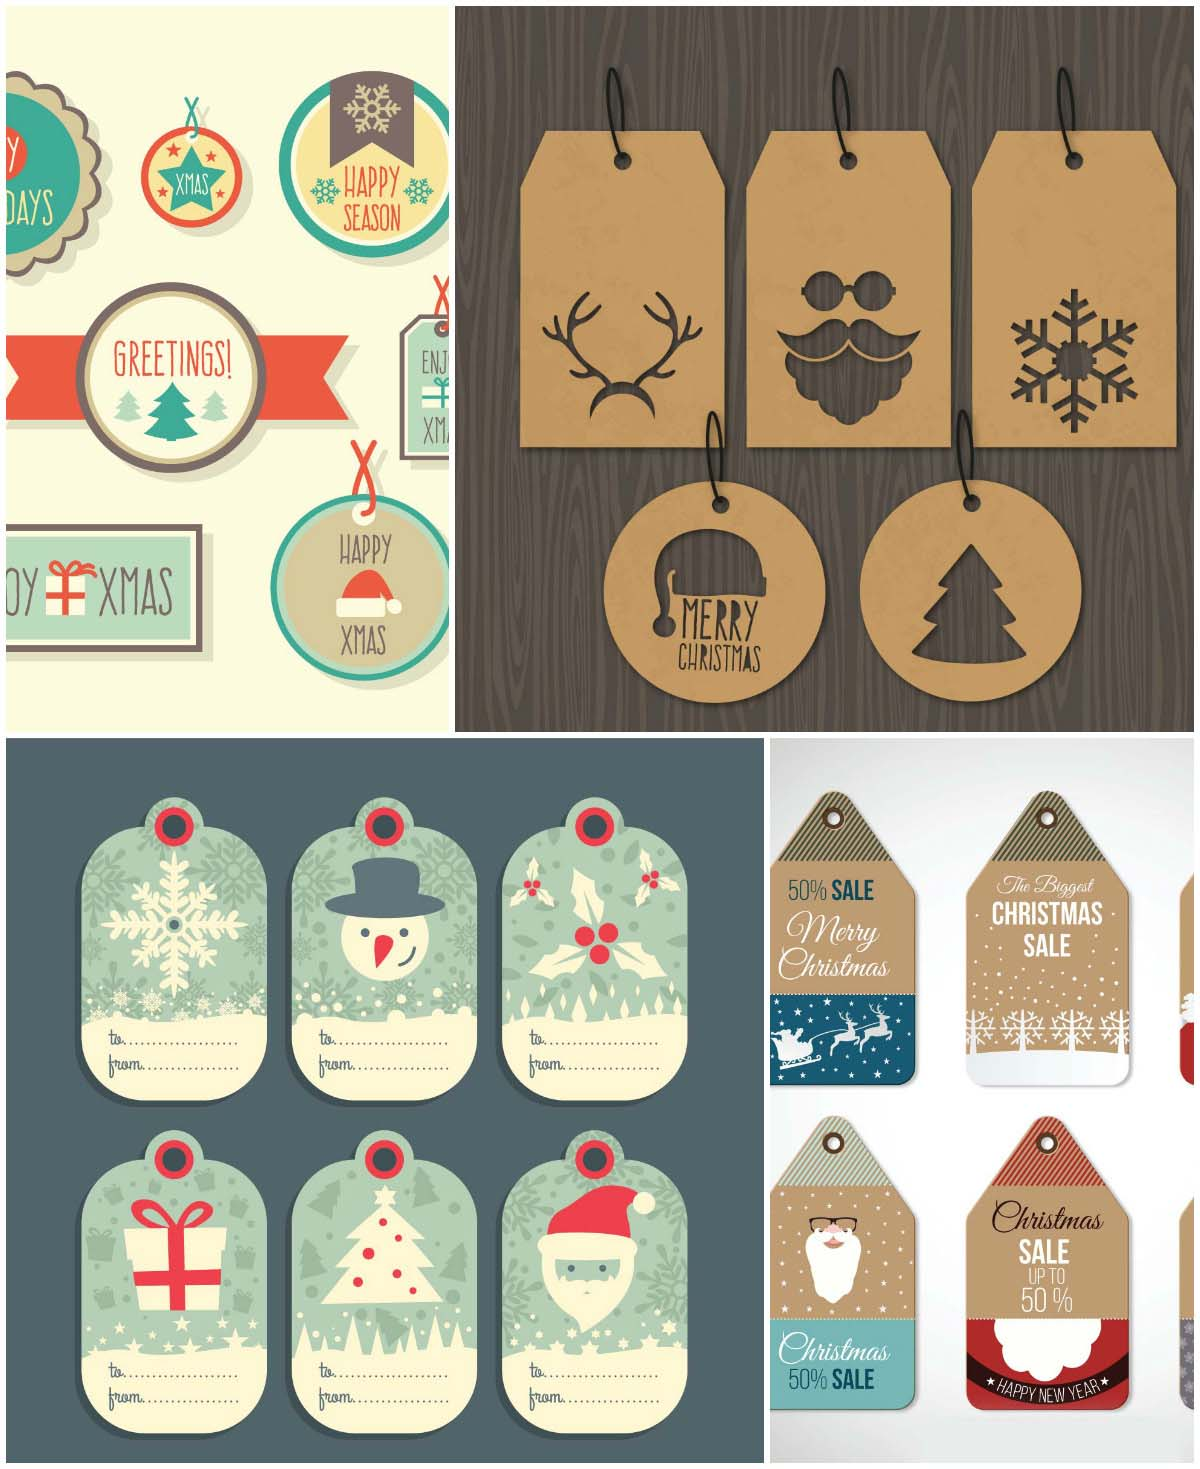 retro tag fot Christmas and New Year sales vector